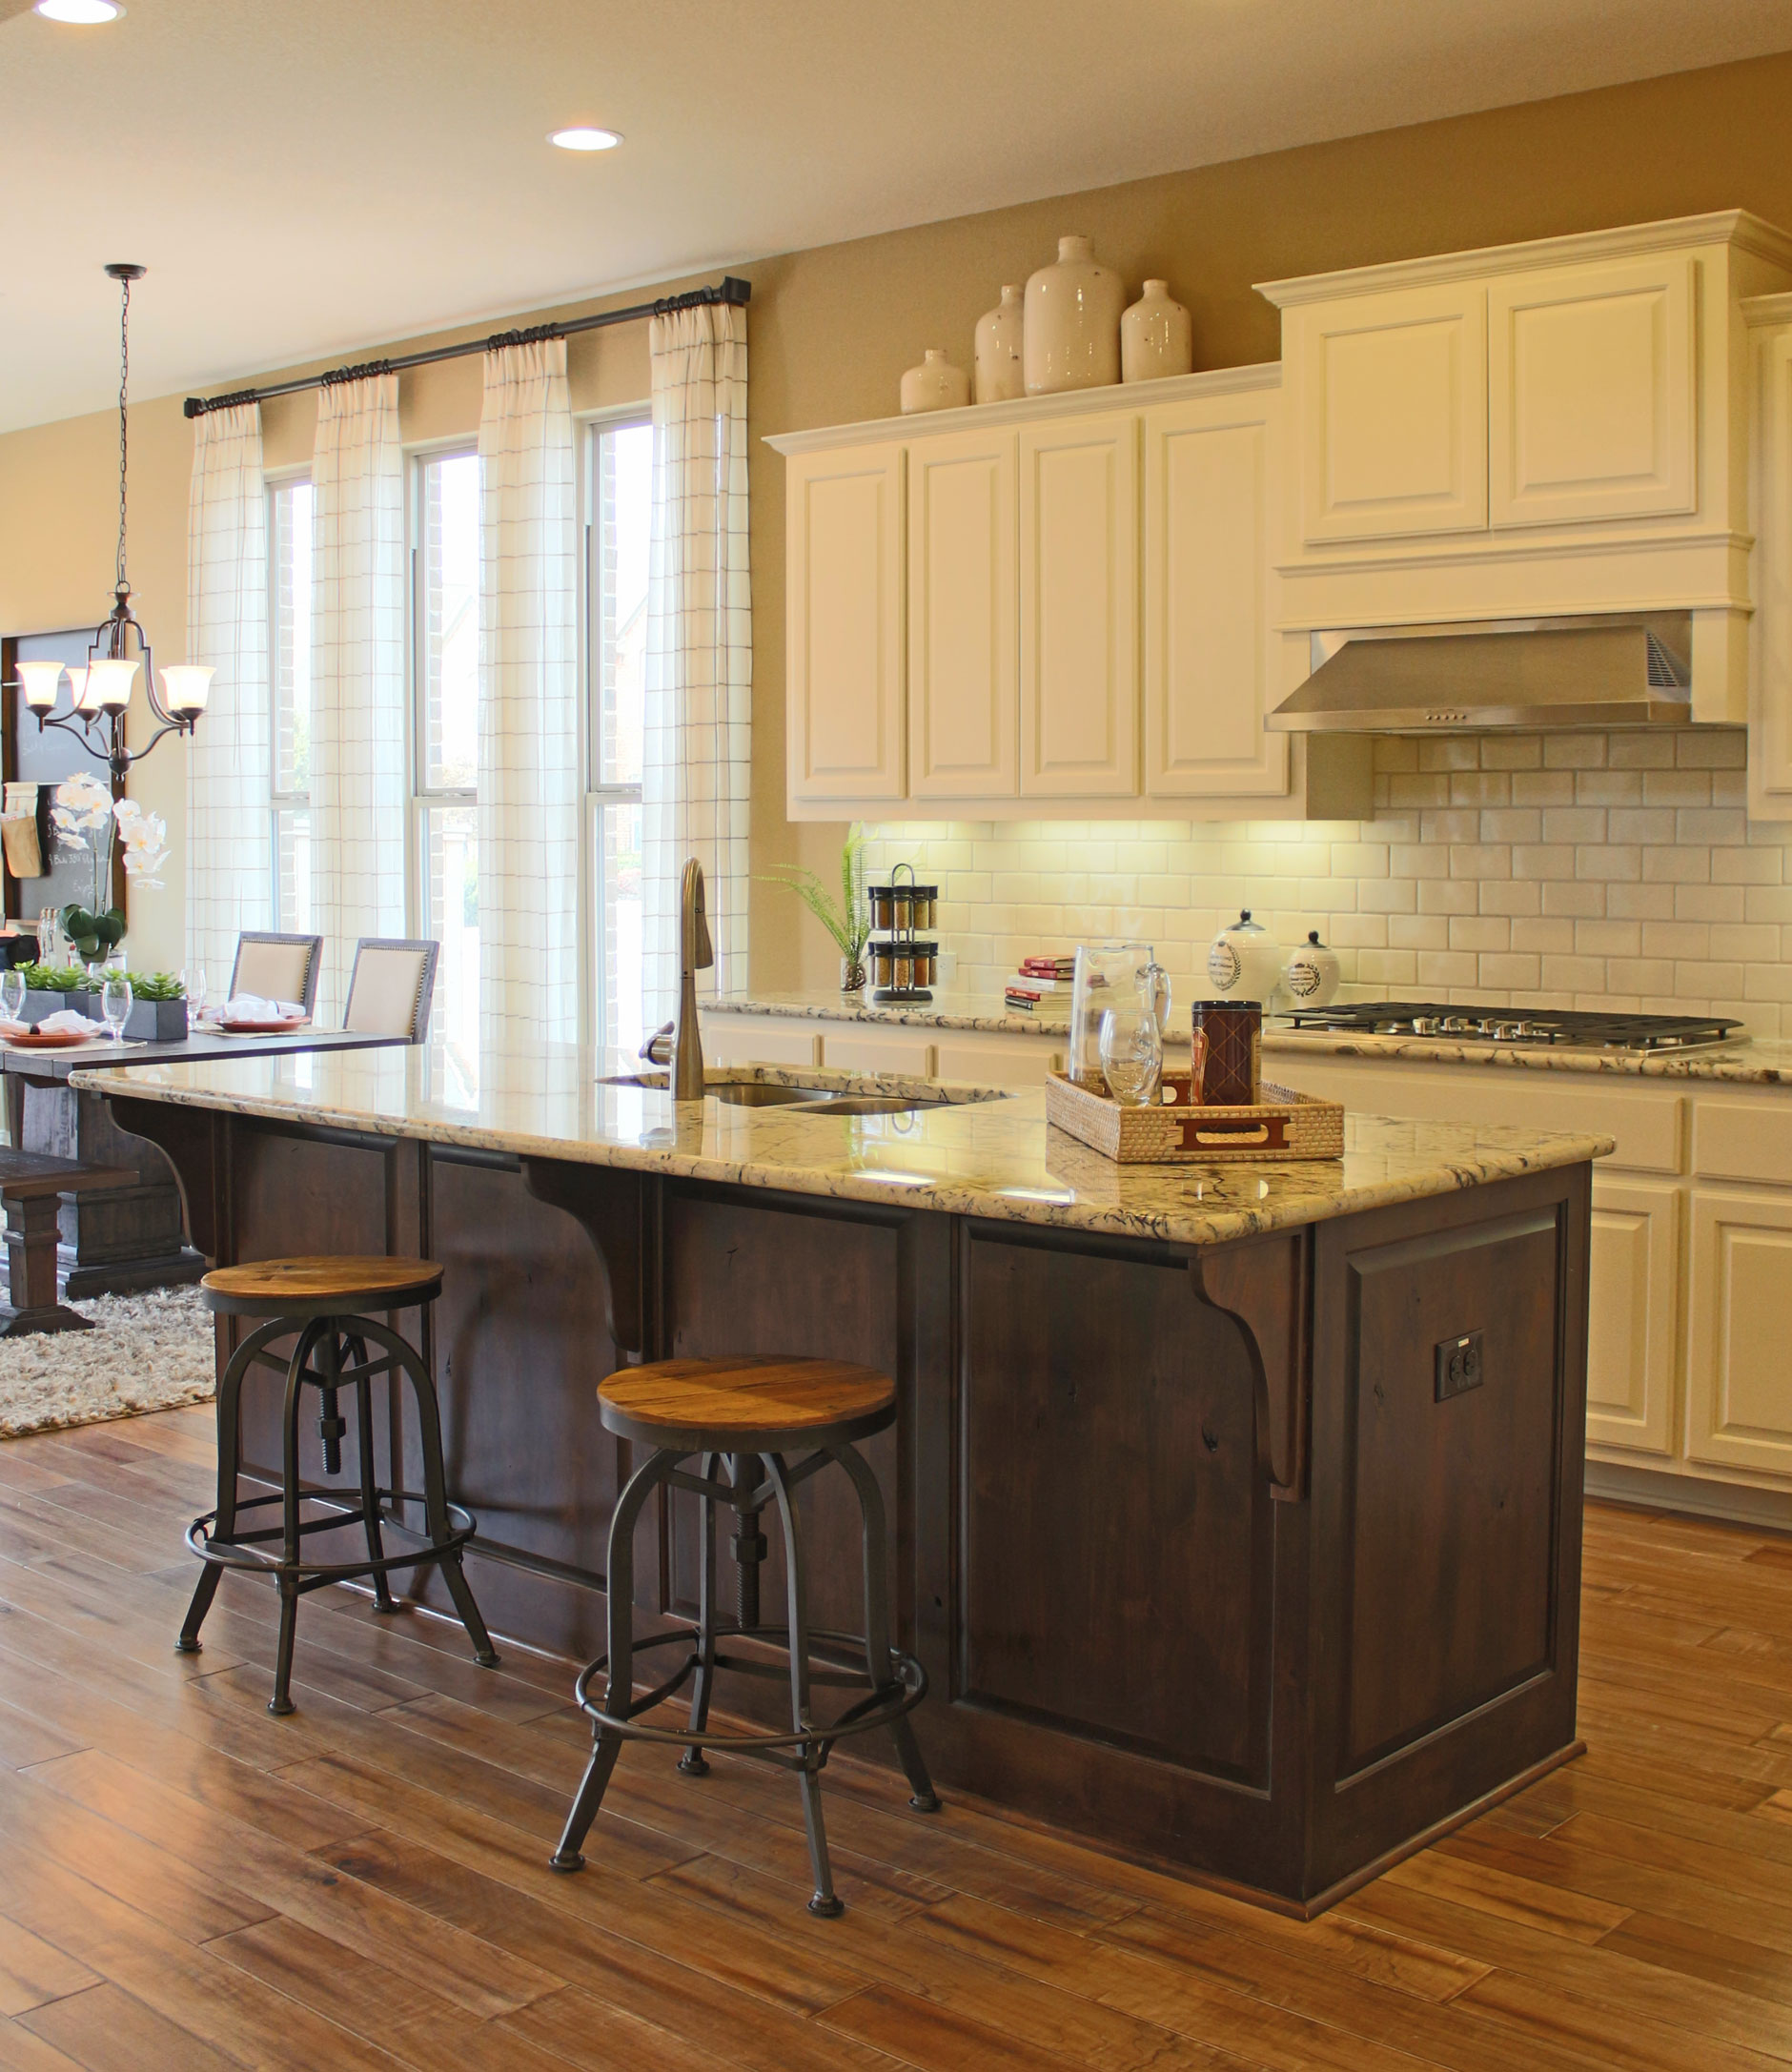 Kitchen island with corbels in knotty alder by Burrows Cabinets